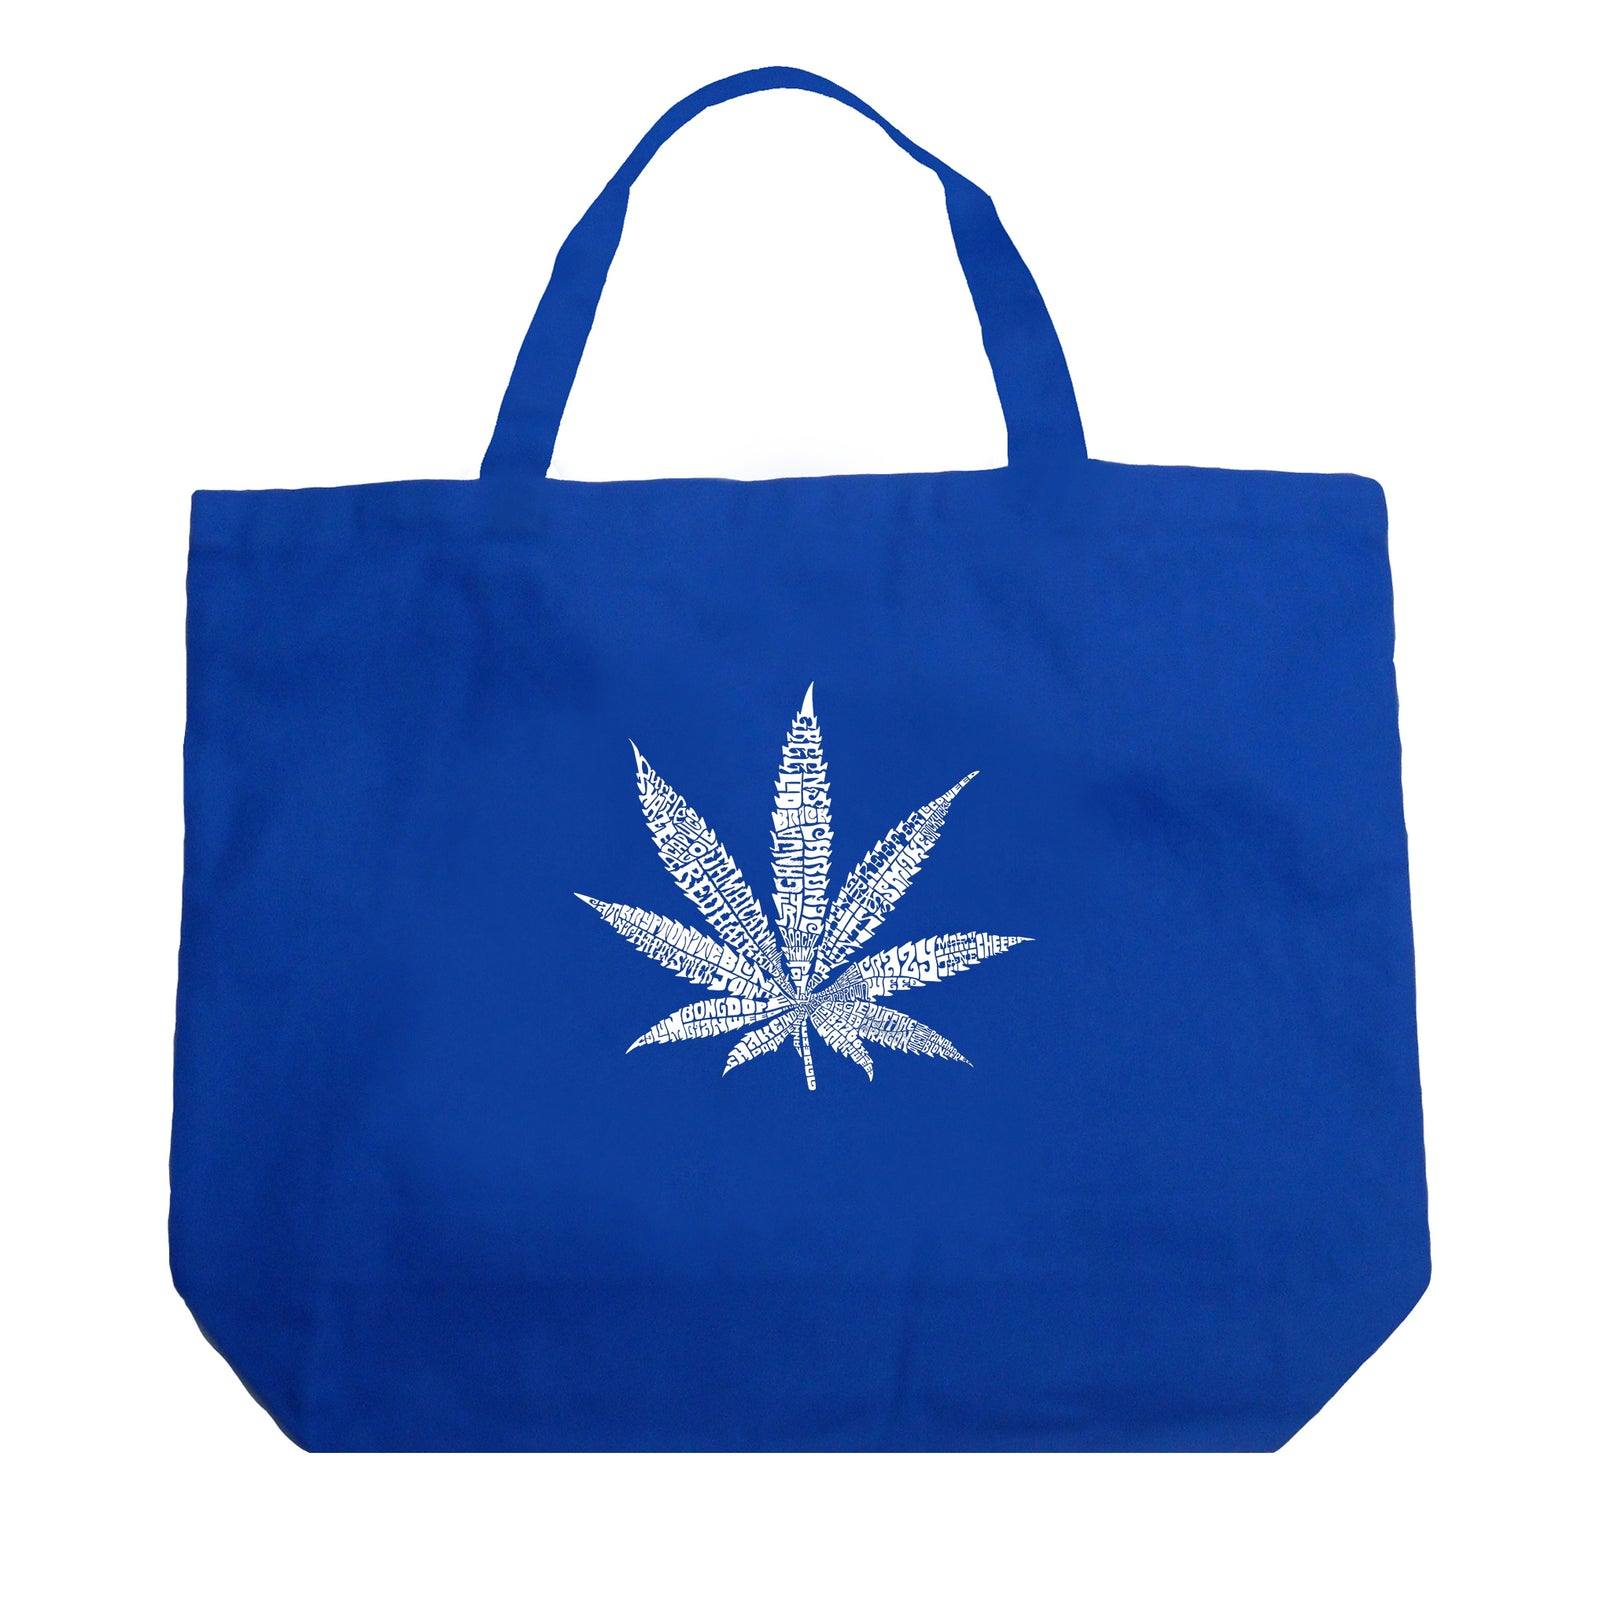 Large Tote Bag - 50 DIFFERENT STREET TERMS FOR MARIJUANA